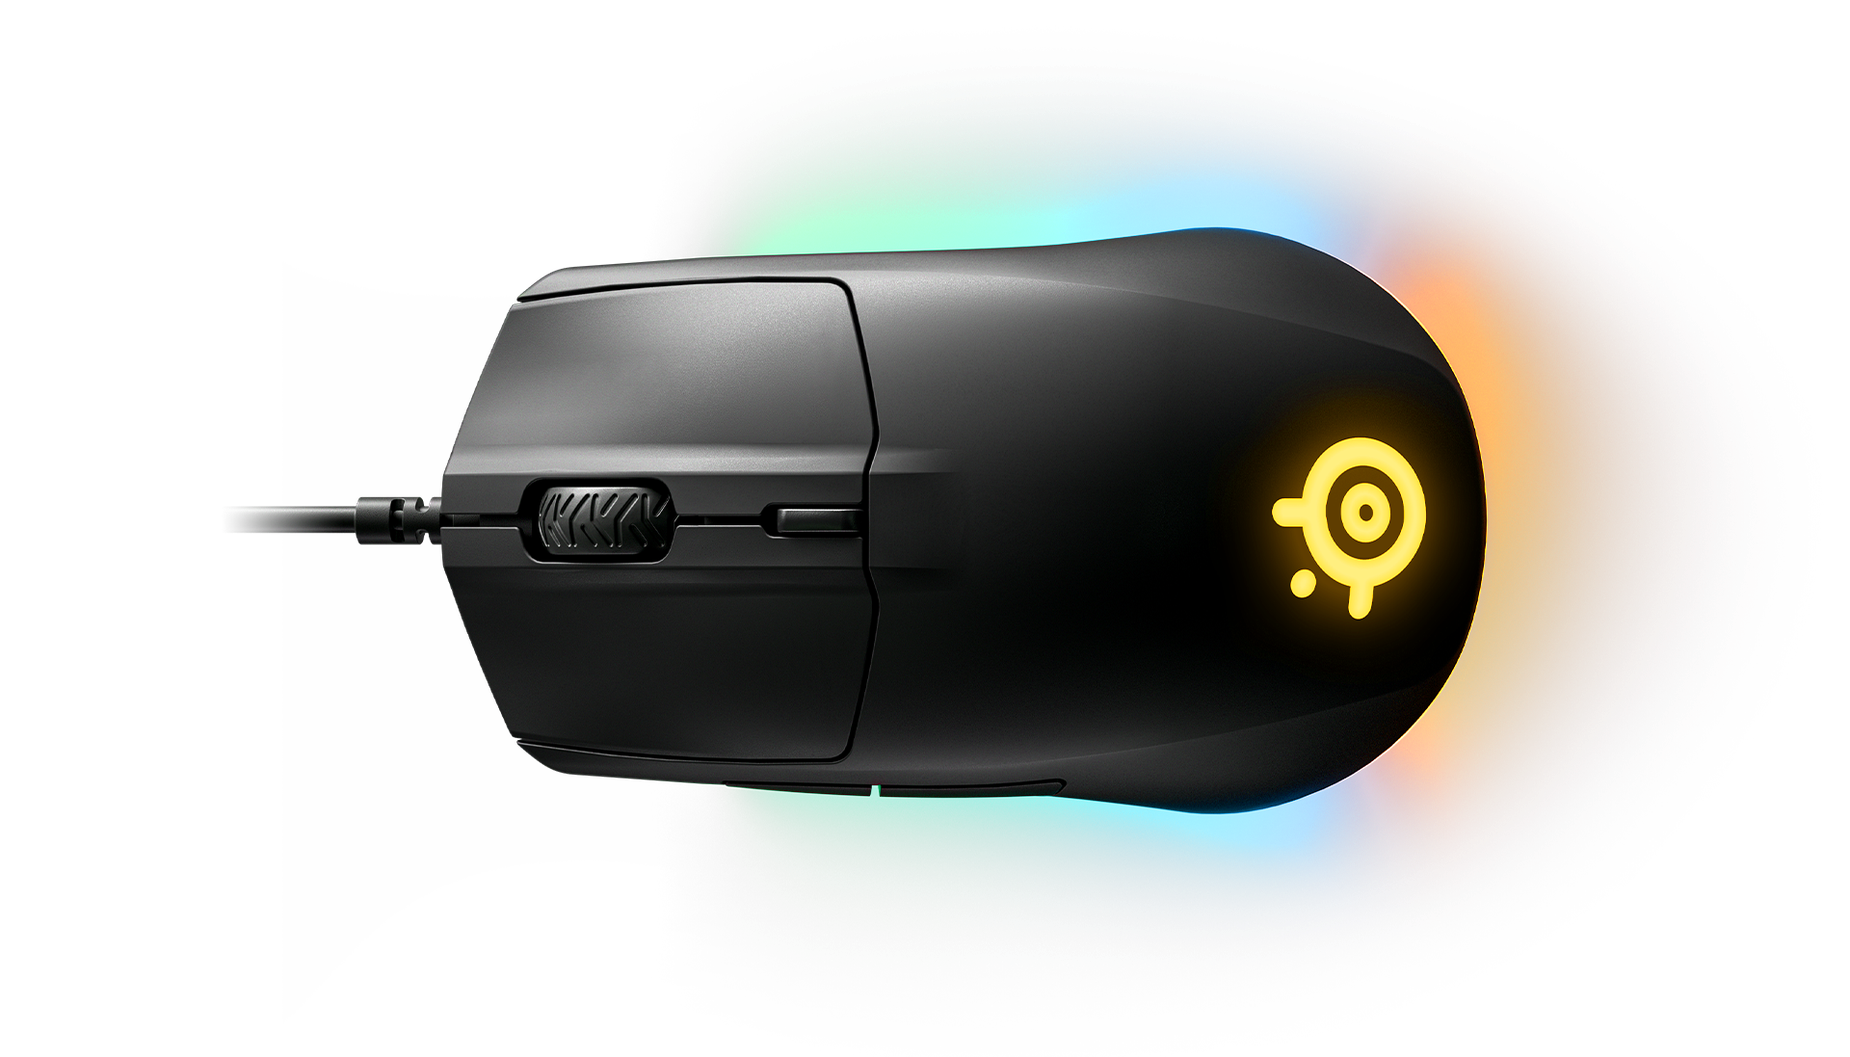 Rival 3 gaming mouse top view